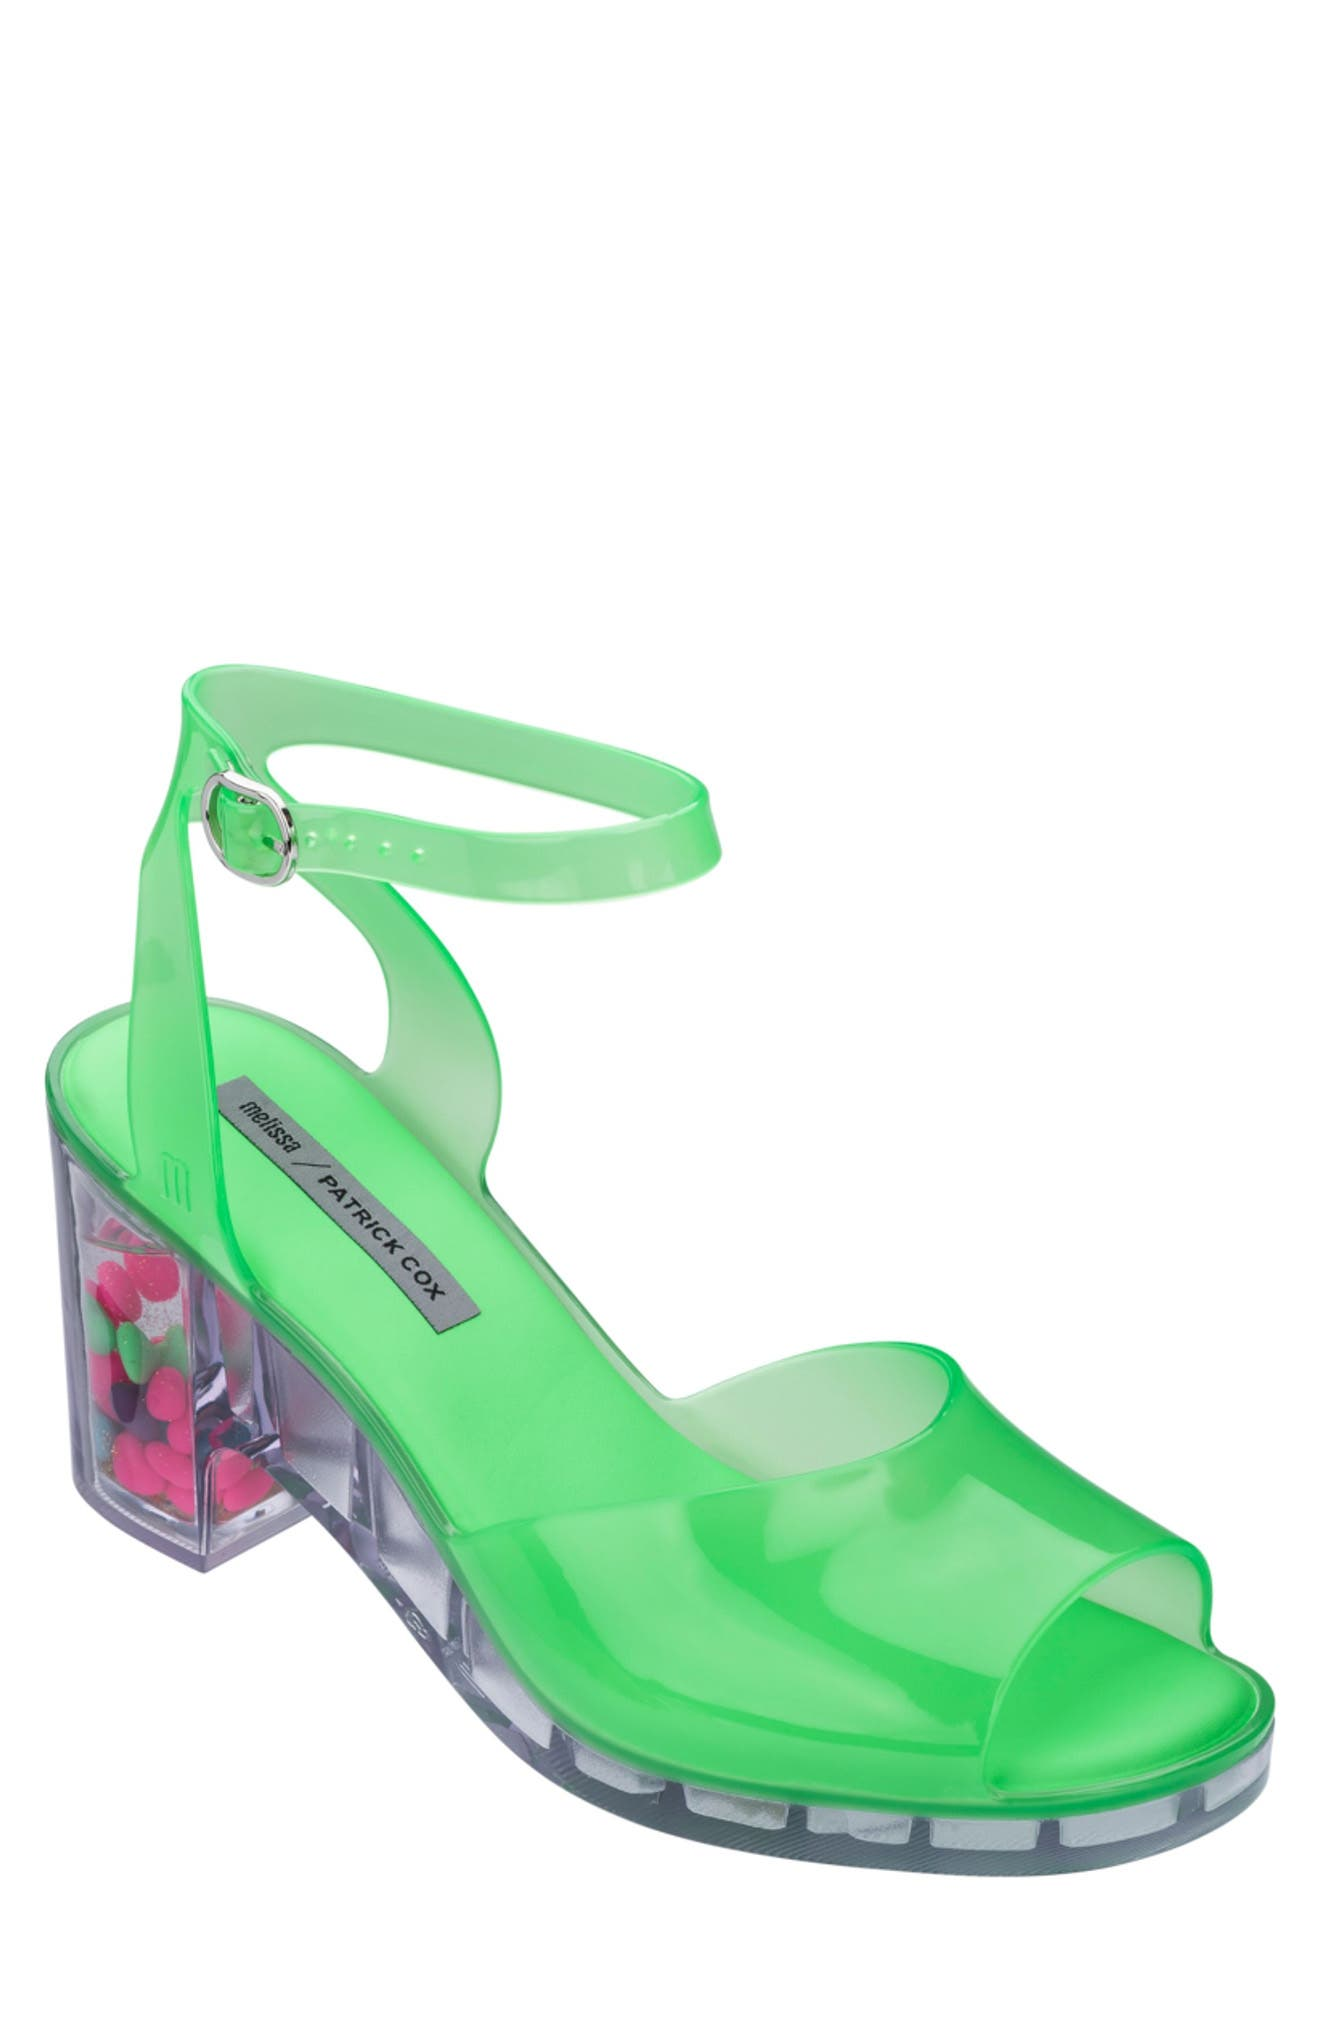 80s Shoes, Sneakers, Jelly flats  1980s Shoes MELISSA x Patrick Cox Heart Heel Jelly Sandal Size 9 in Green at Nordstrom Rack $59.97 AT vintagedancer.com